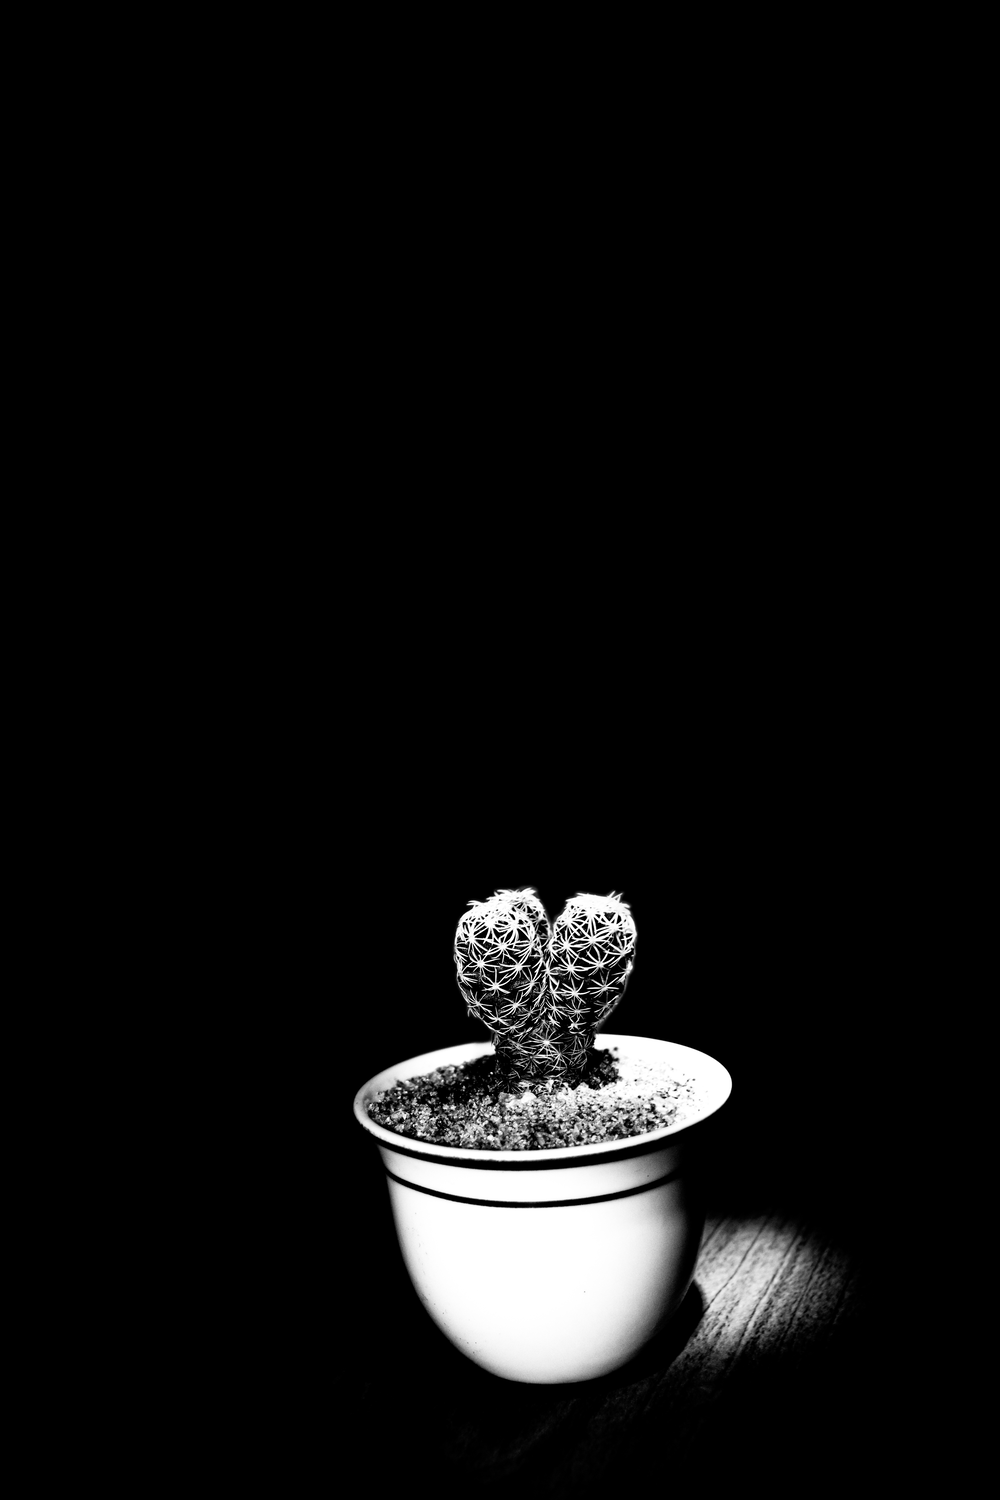 potted cactus plant grayscale photography